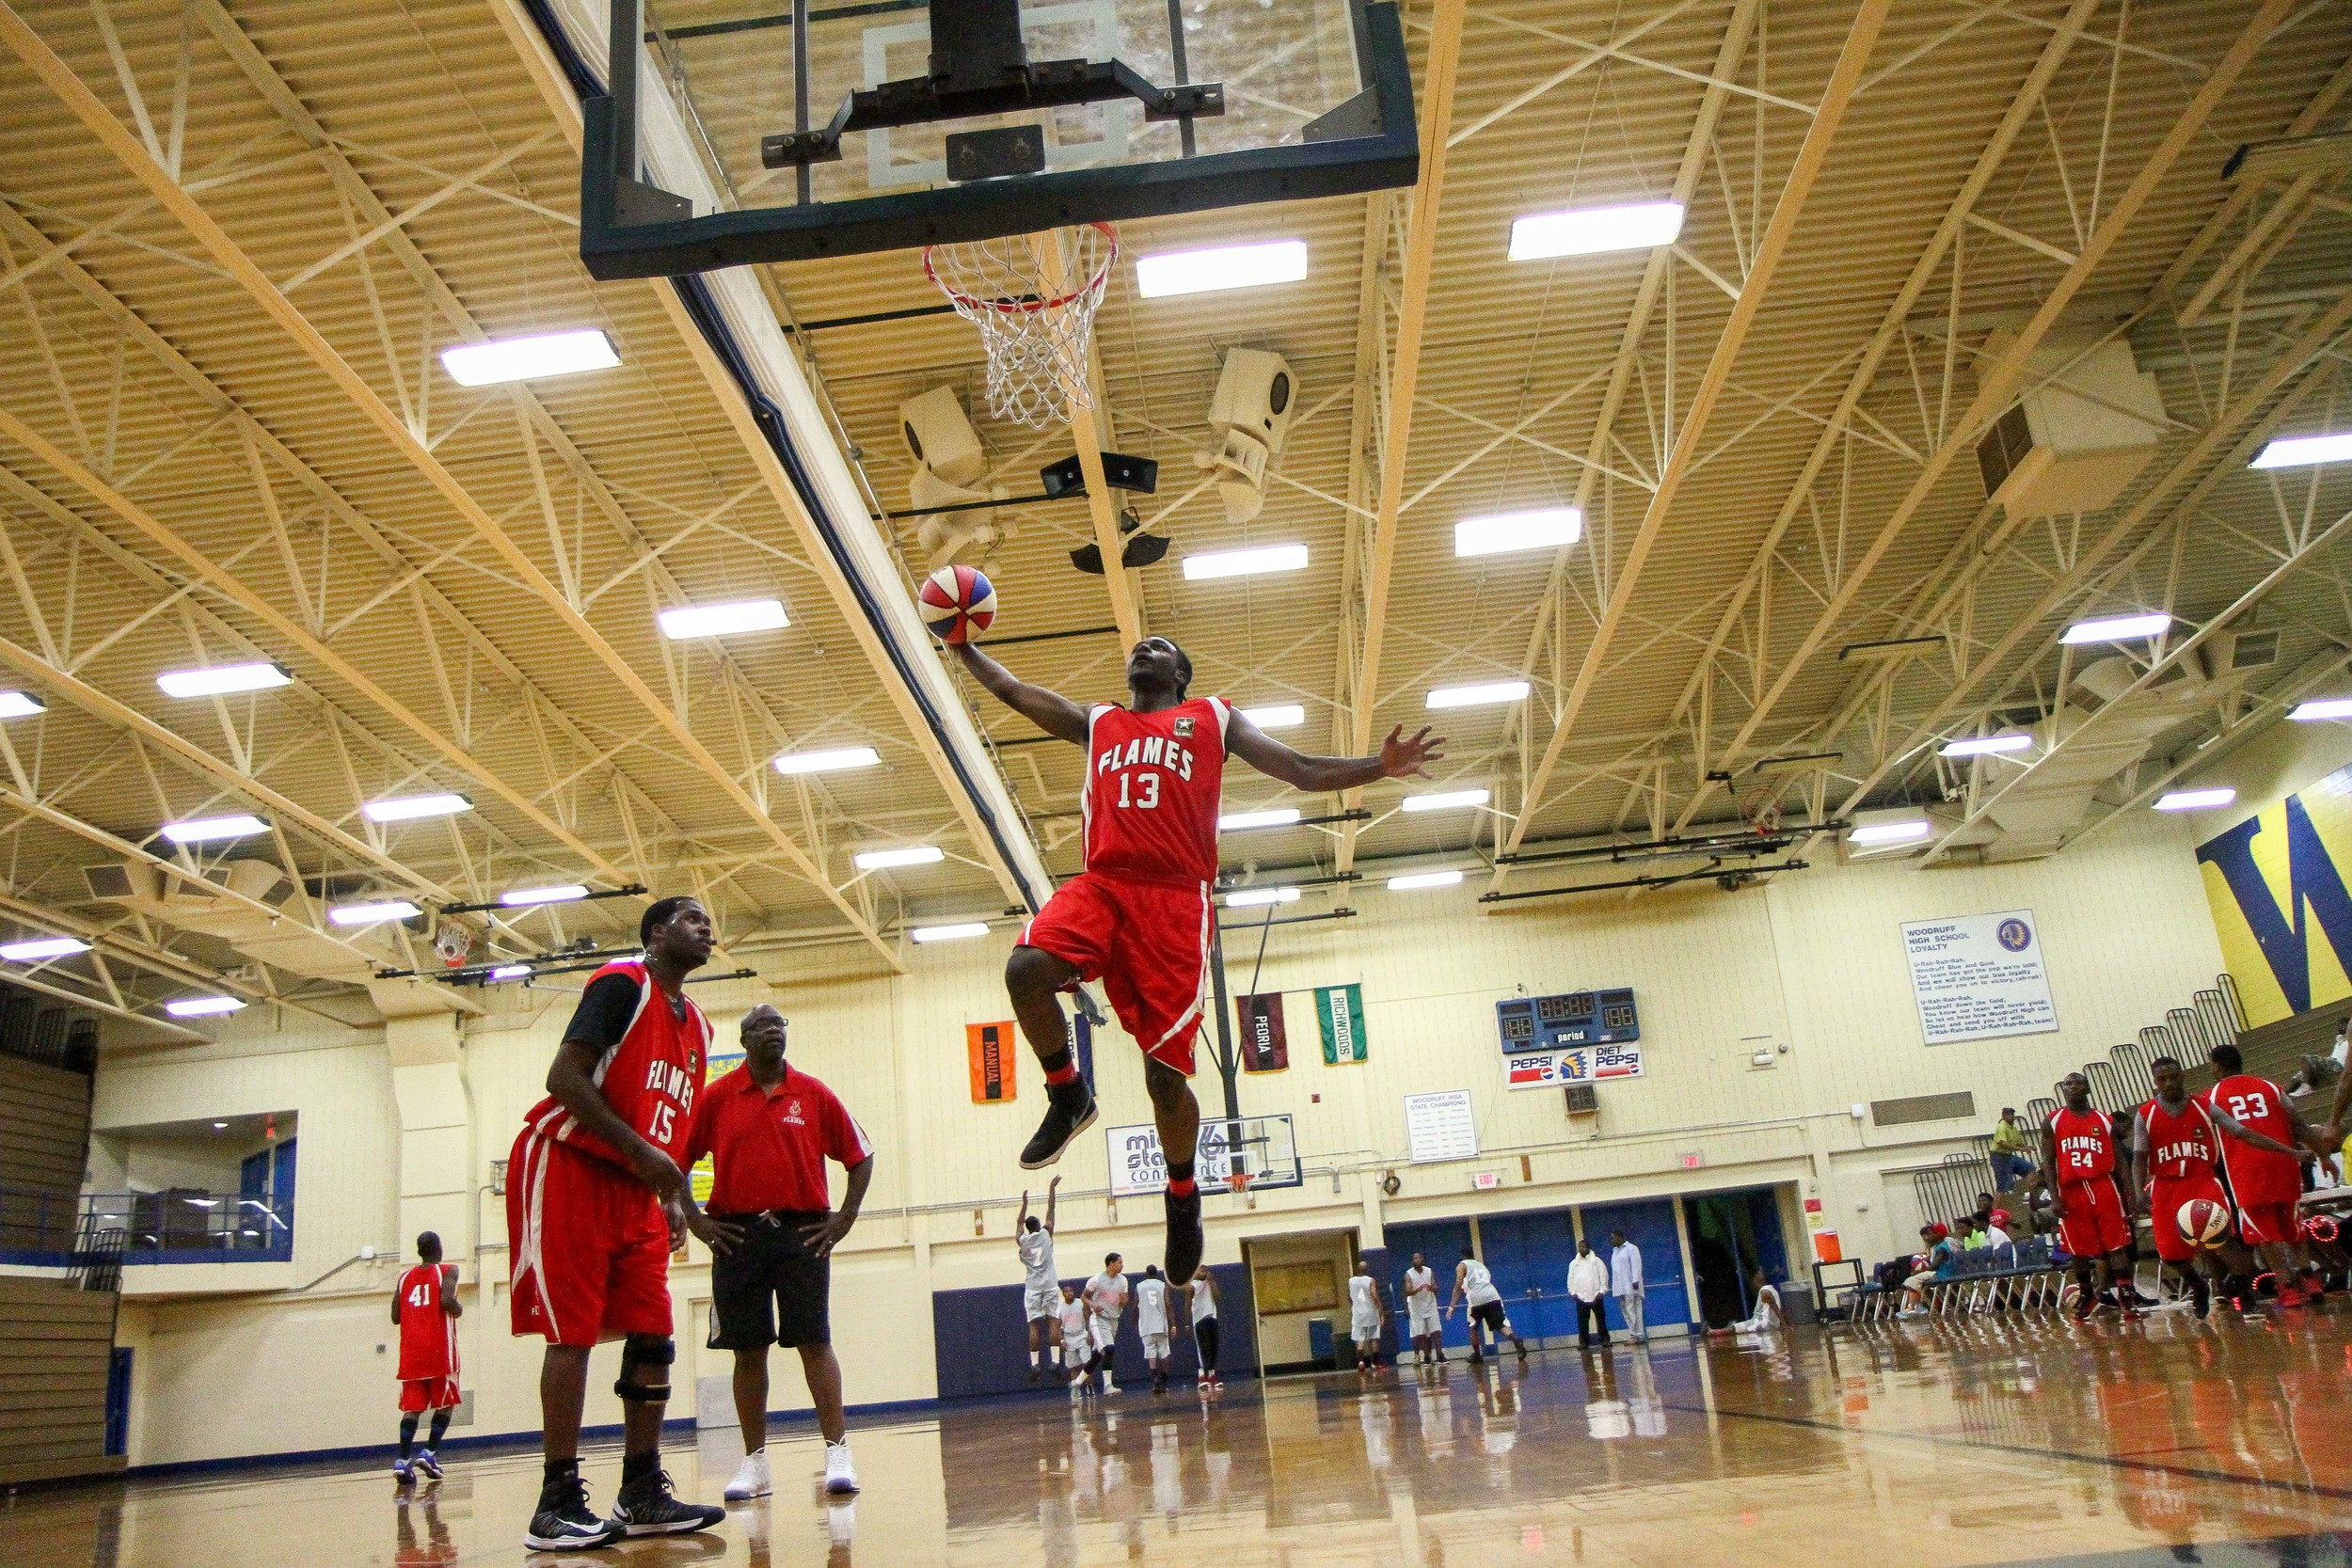 Midwest Flames player number 13 attempts a dunk during warm ups.